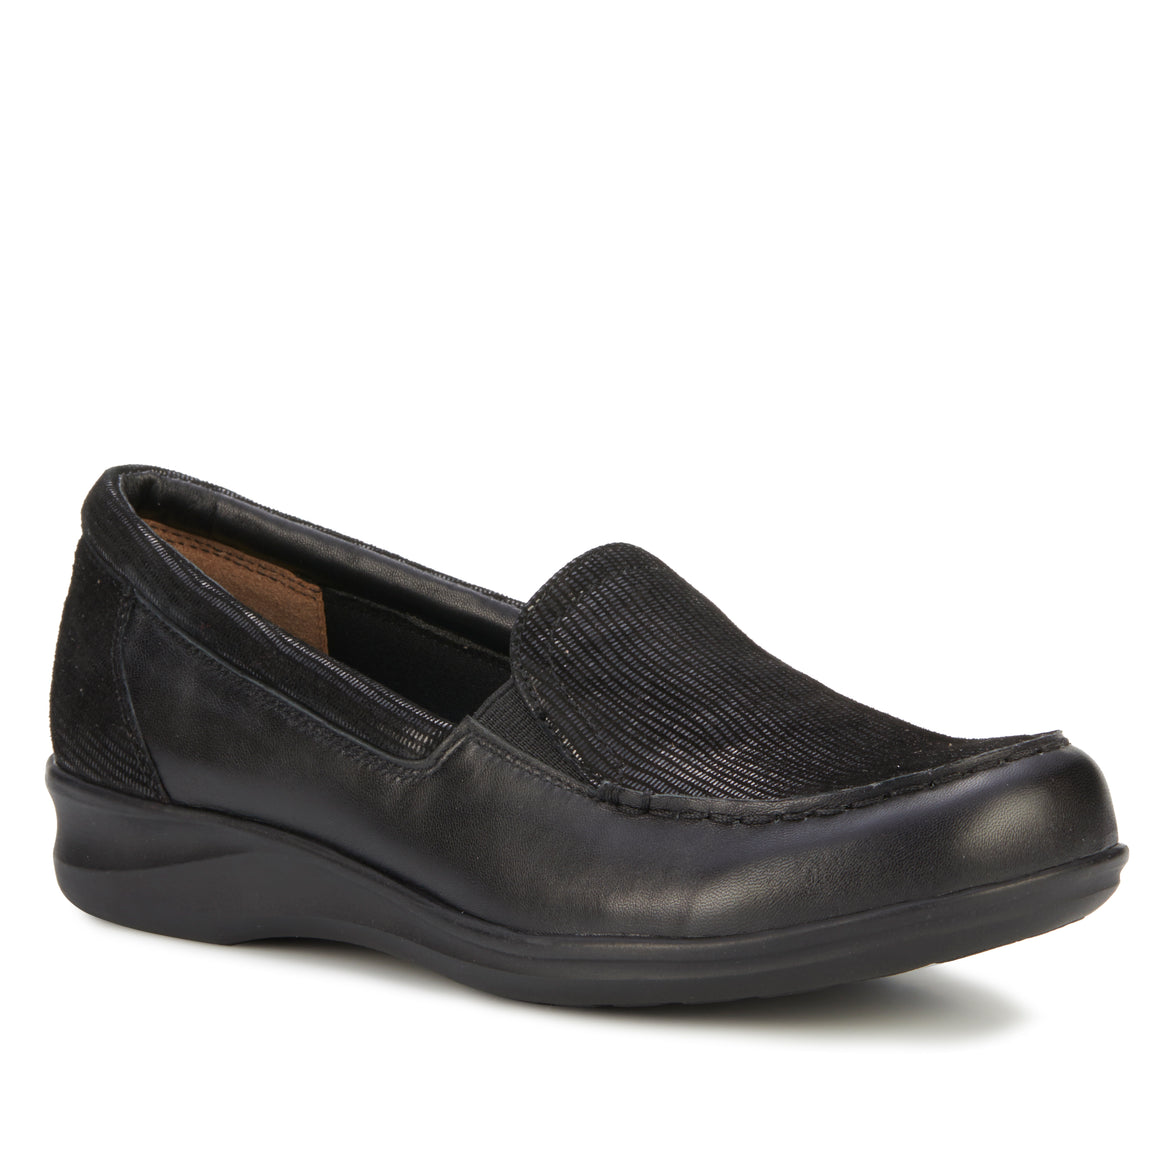 Clayton Casual Slip-On: Black Leather and Patent Lizard Print NEW